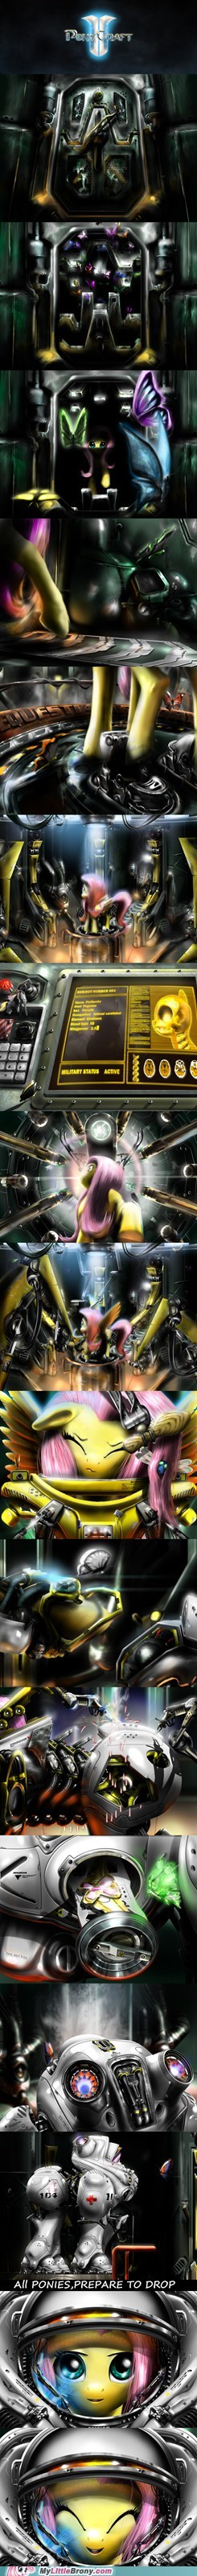 crossover fluttershy ponycraft 2 starcraft 2 video games - 6575660800